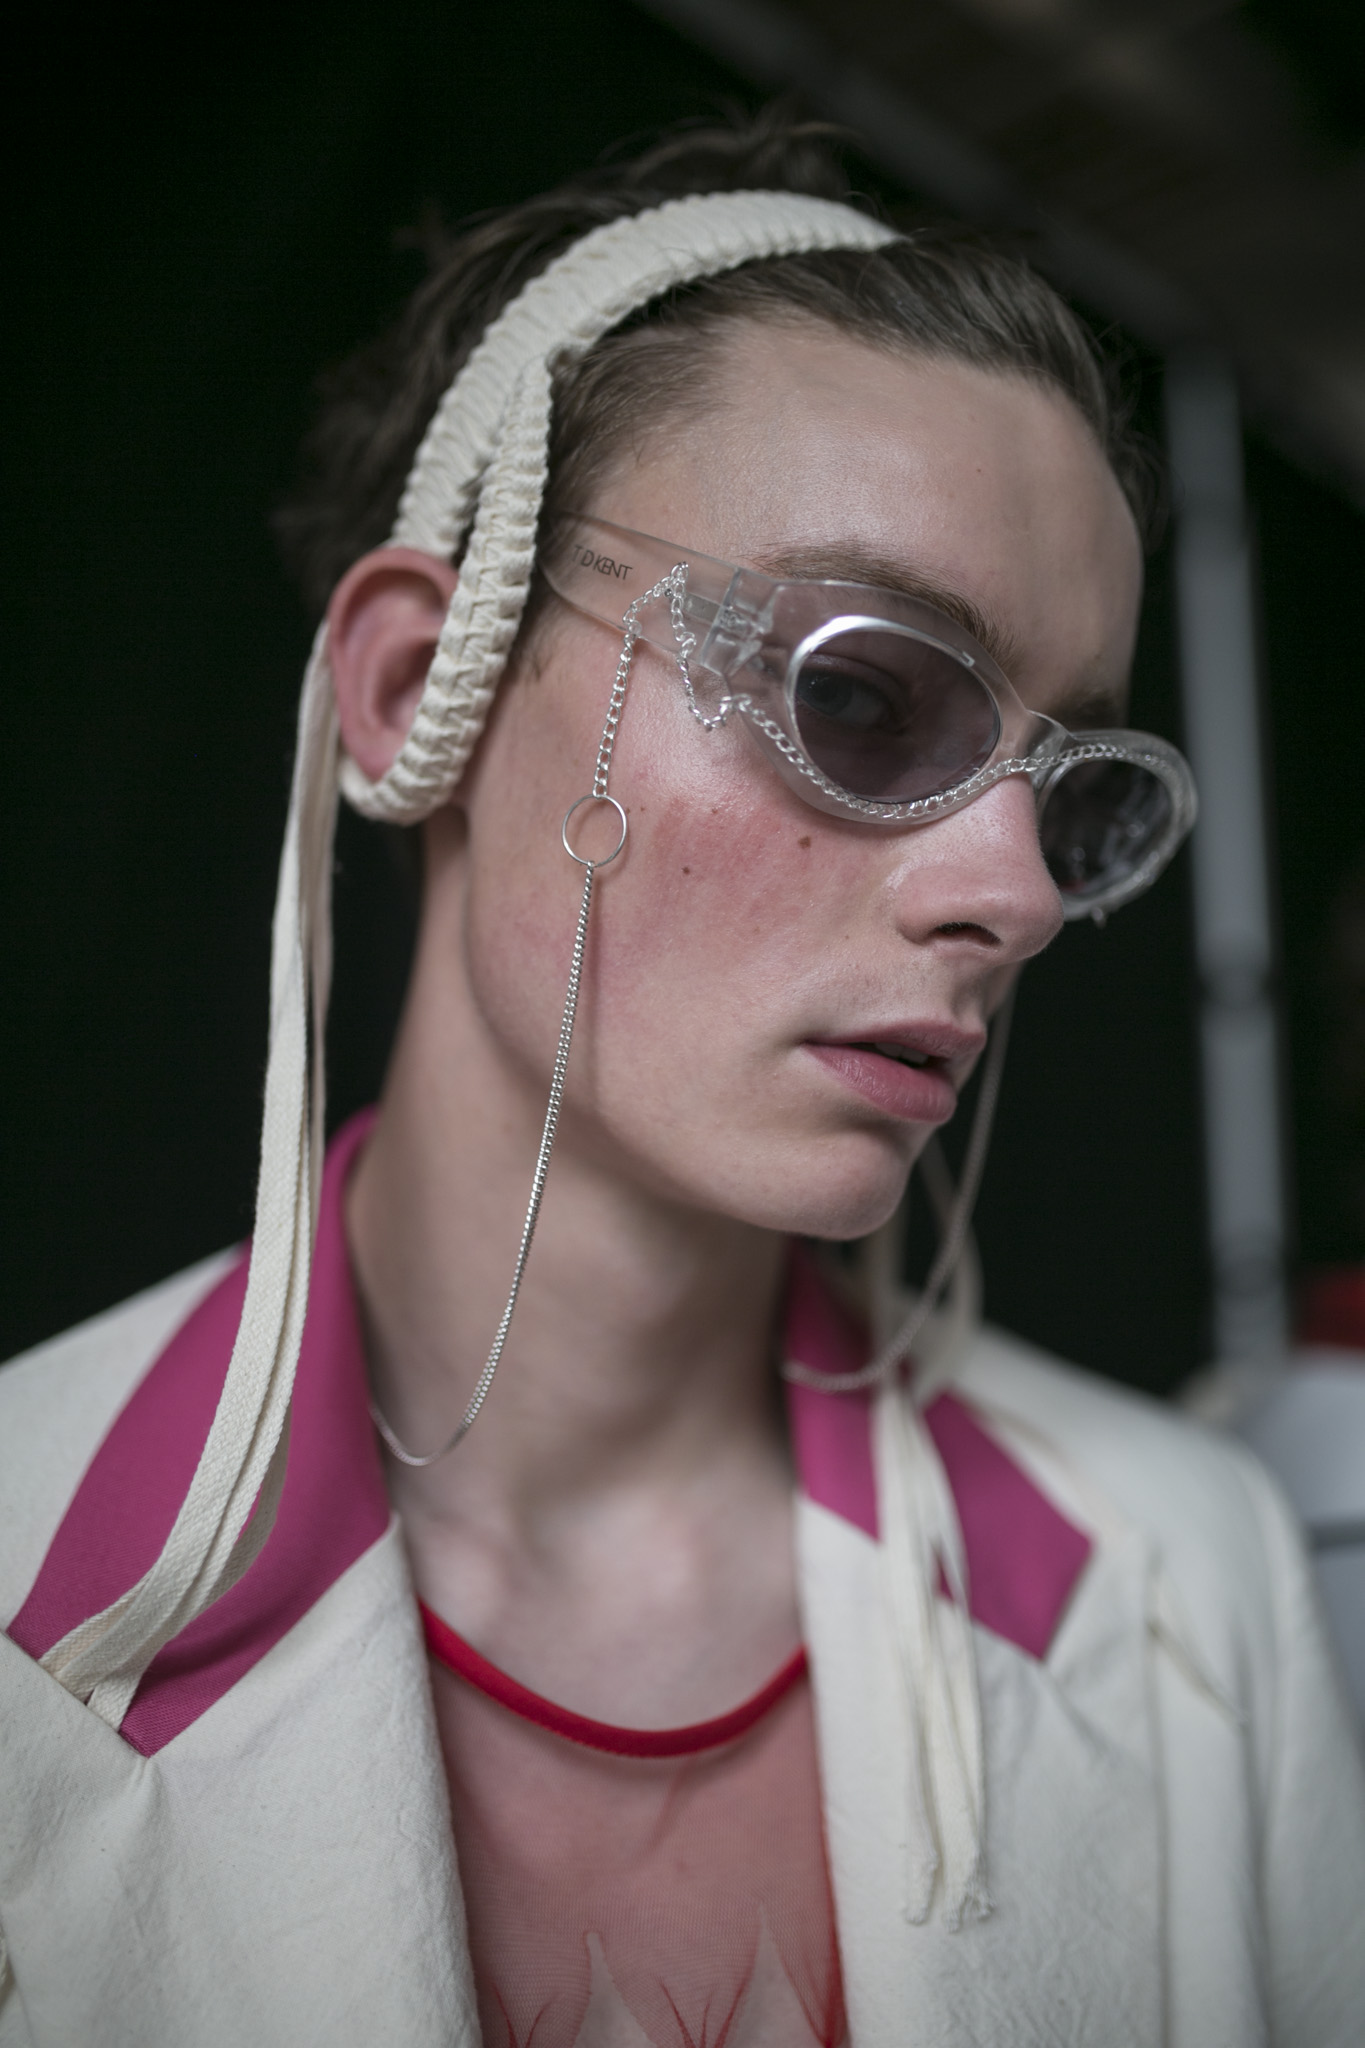 Backstage at Stefan Cooke Men's Spring 2020 photographed in London on 09 June 2019